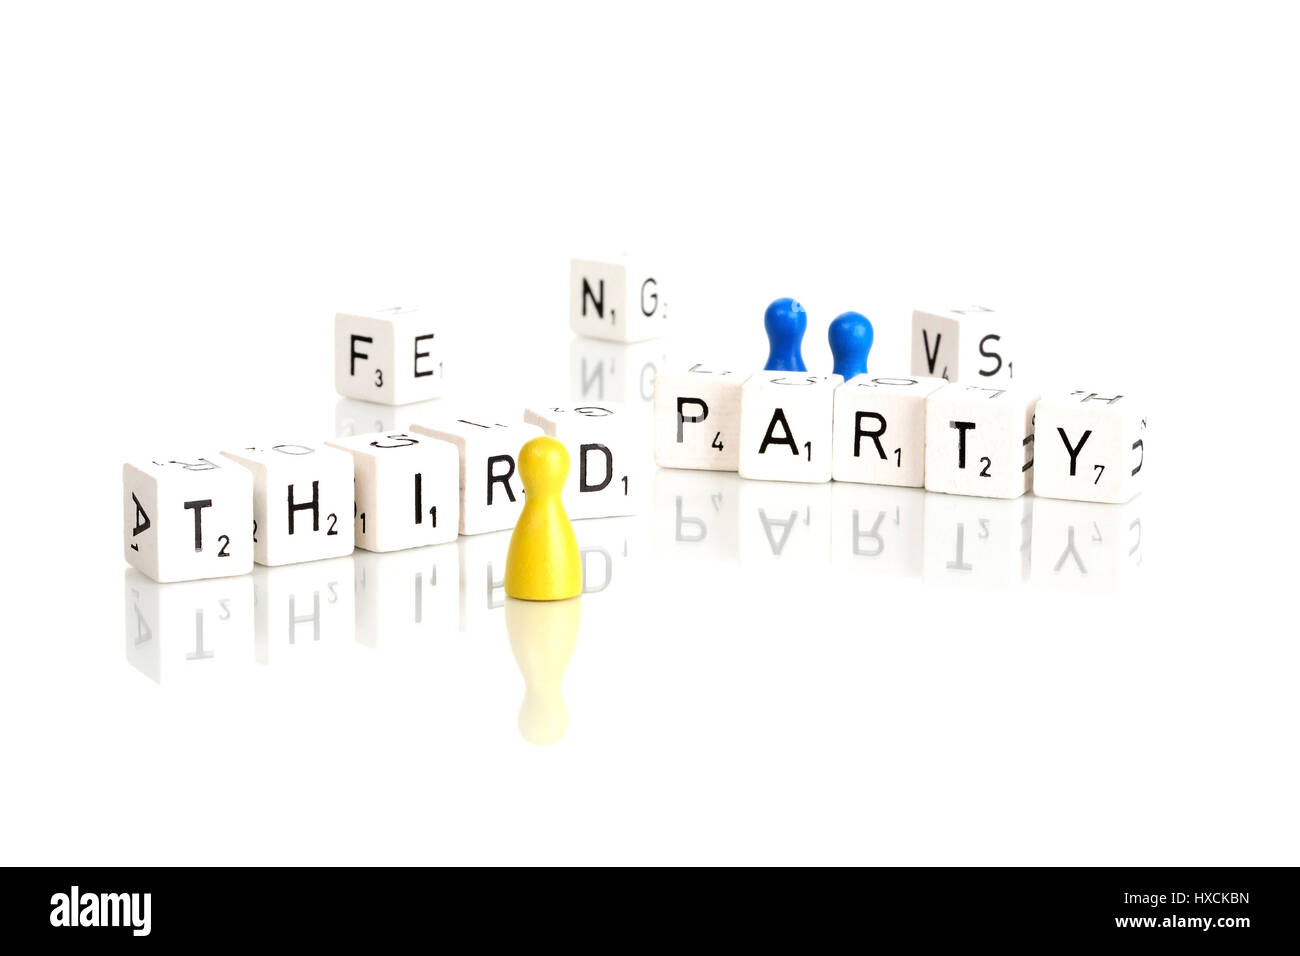 Third party, Third Party - Stock Image